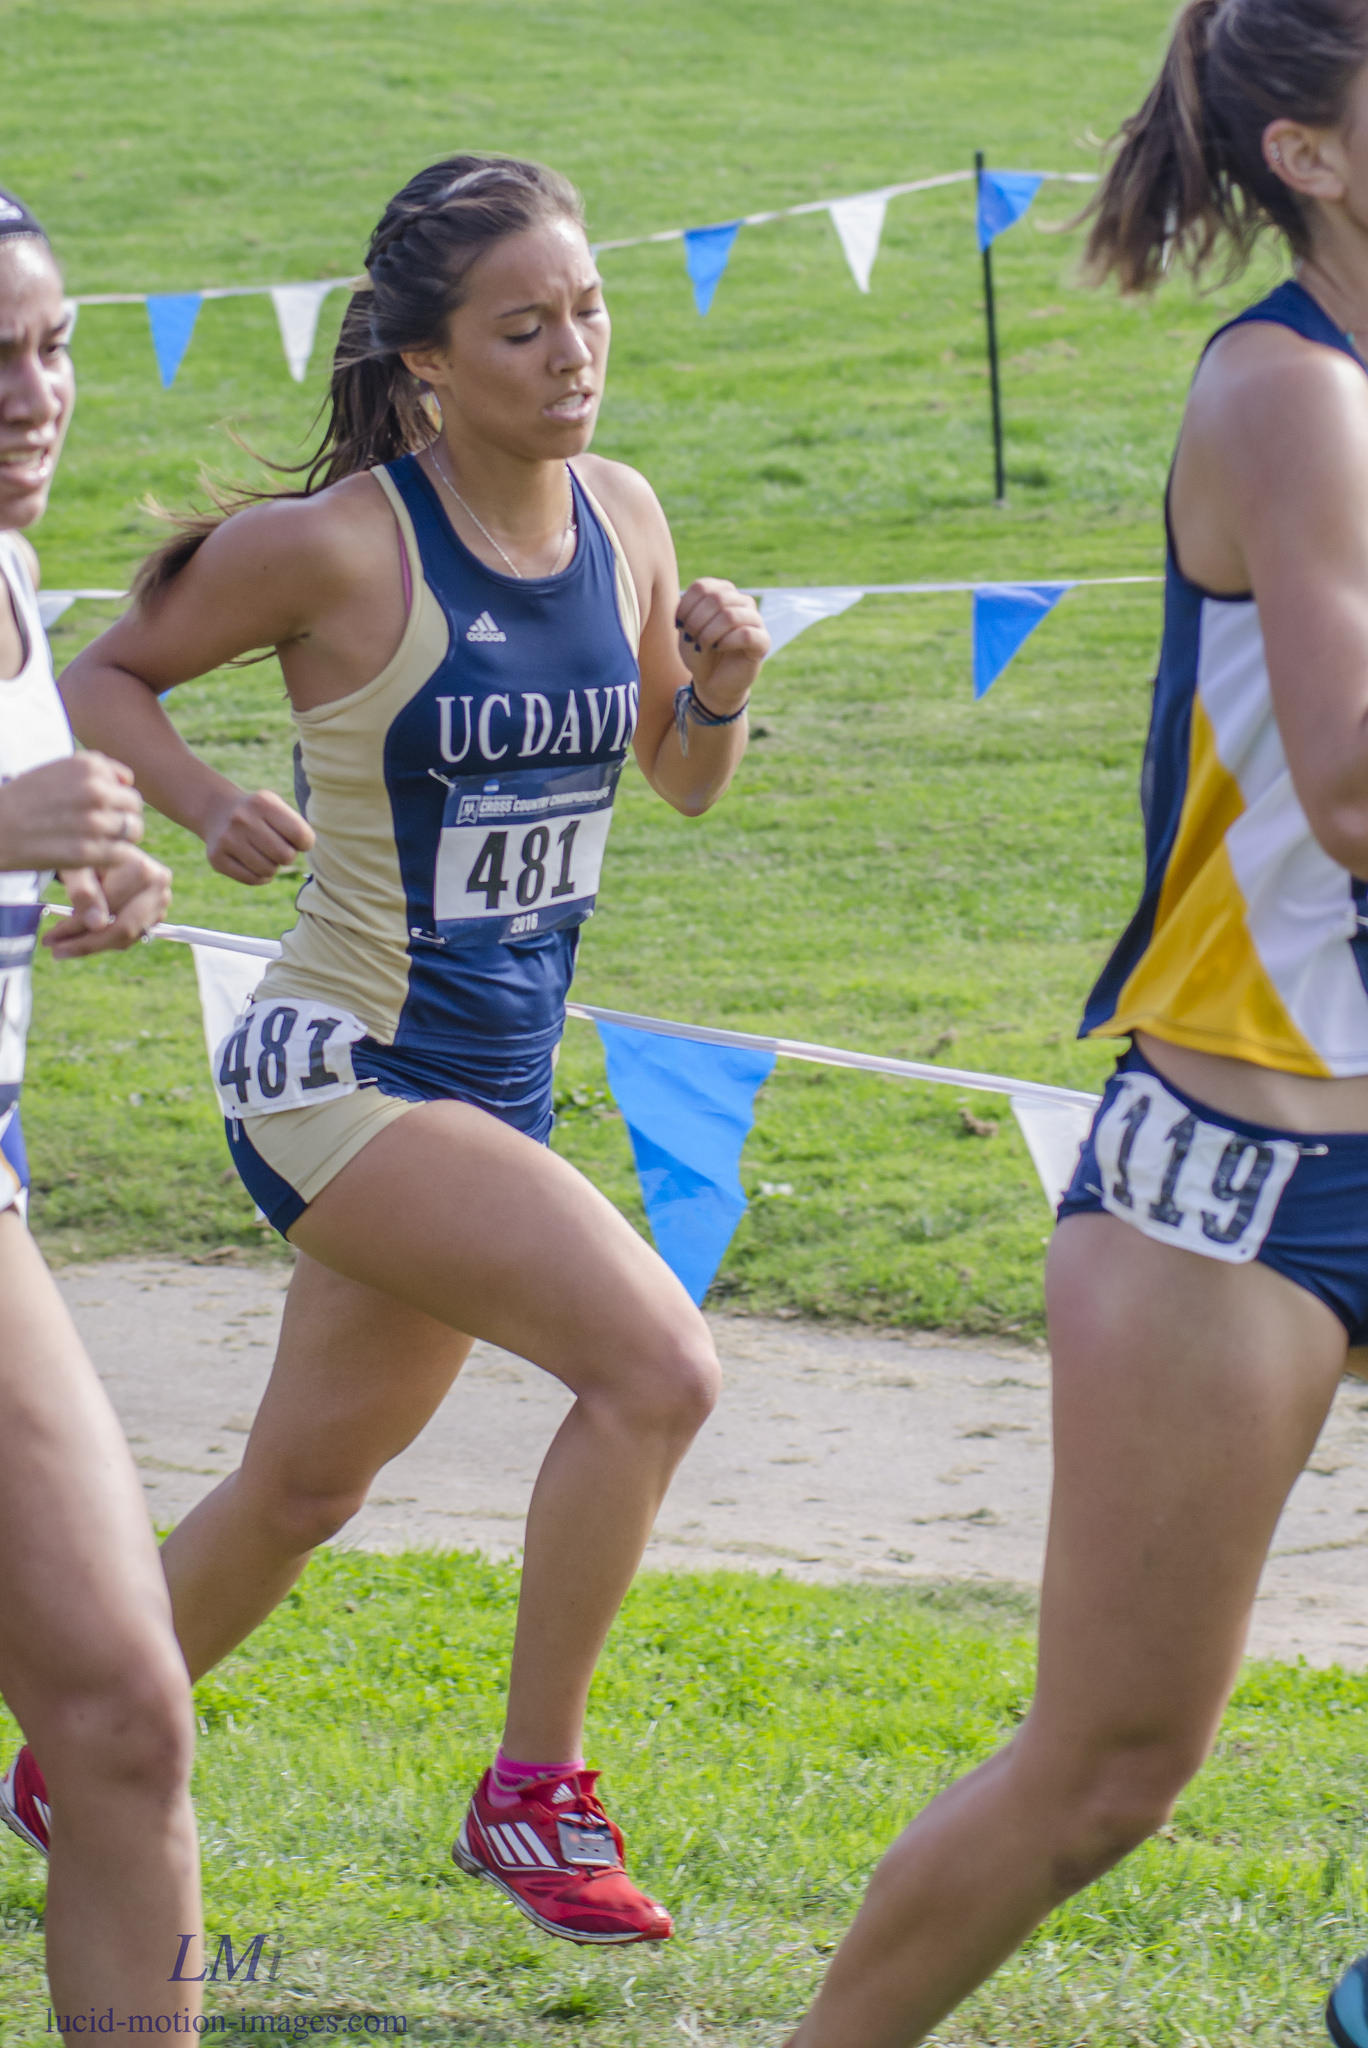 Nicole Lane Finishes Her Collegiate Cross Country Career